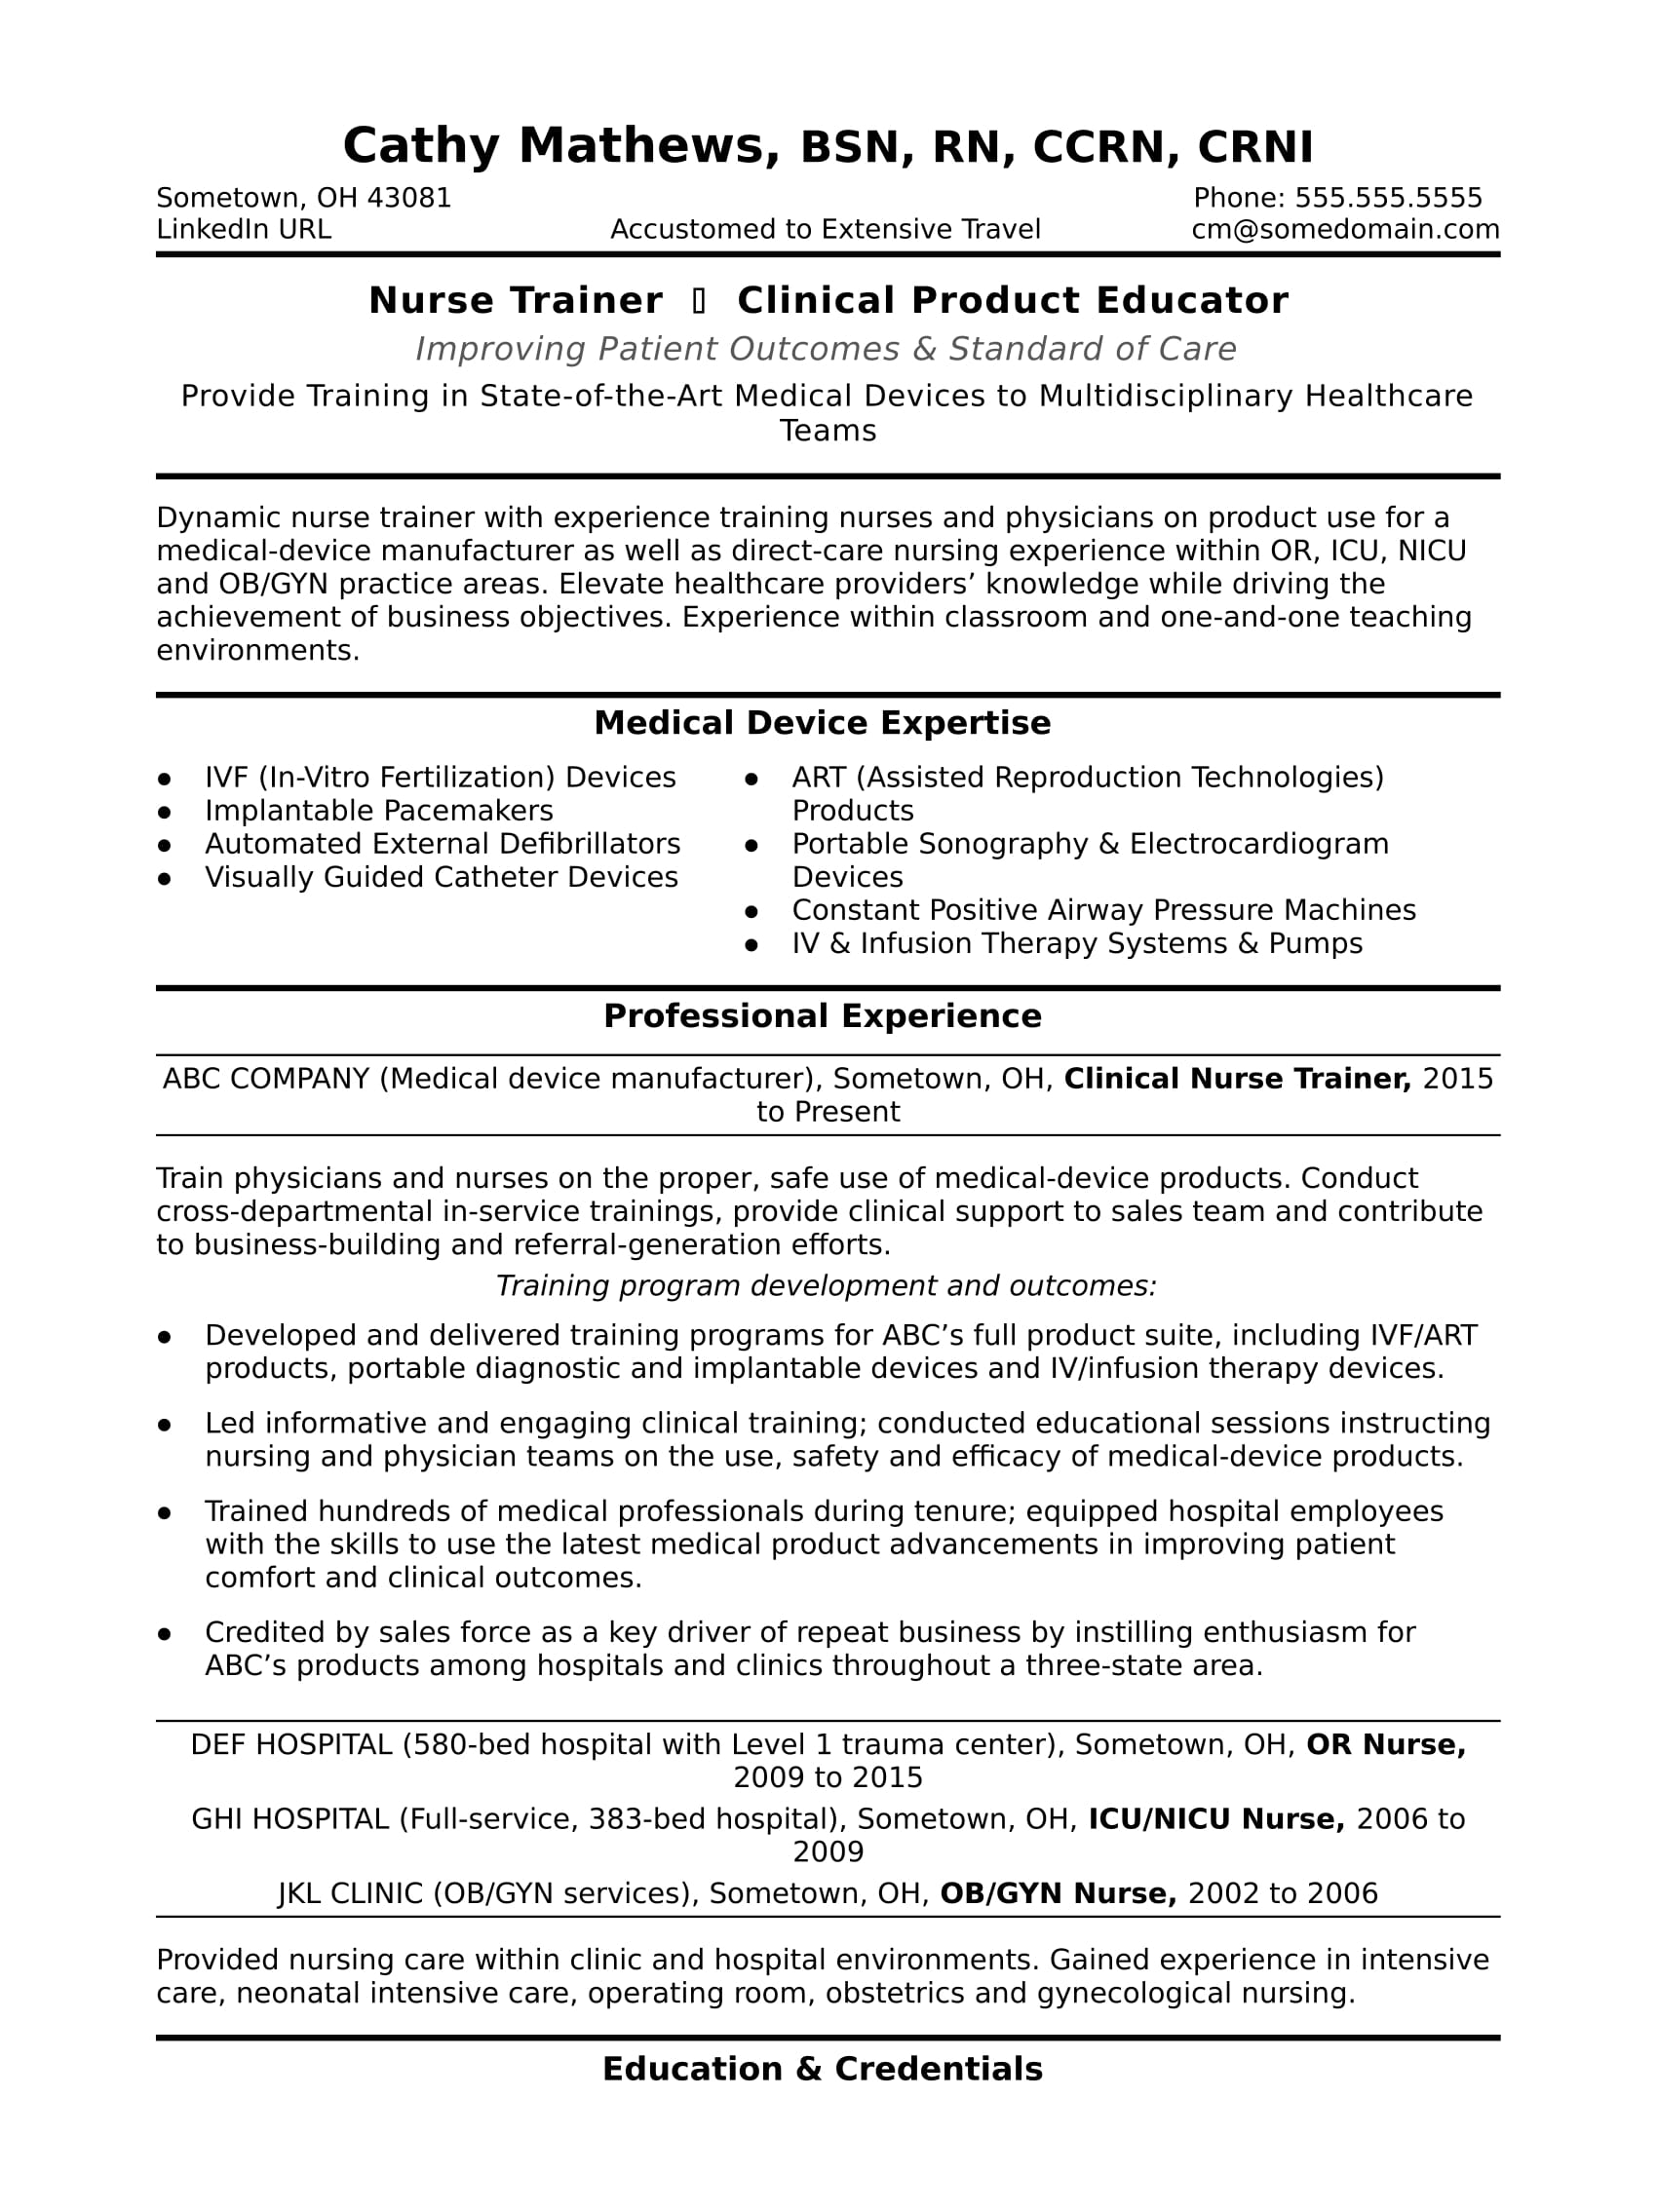 nurse trainer resume sample monster objective for healthcare workers fancy templates Resume Resume Objective For Healthcare Workers